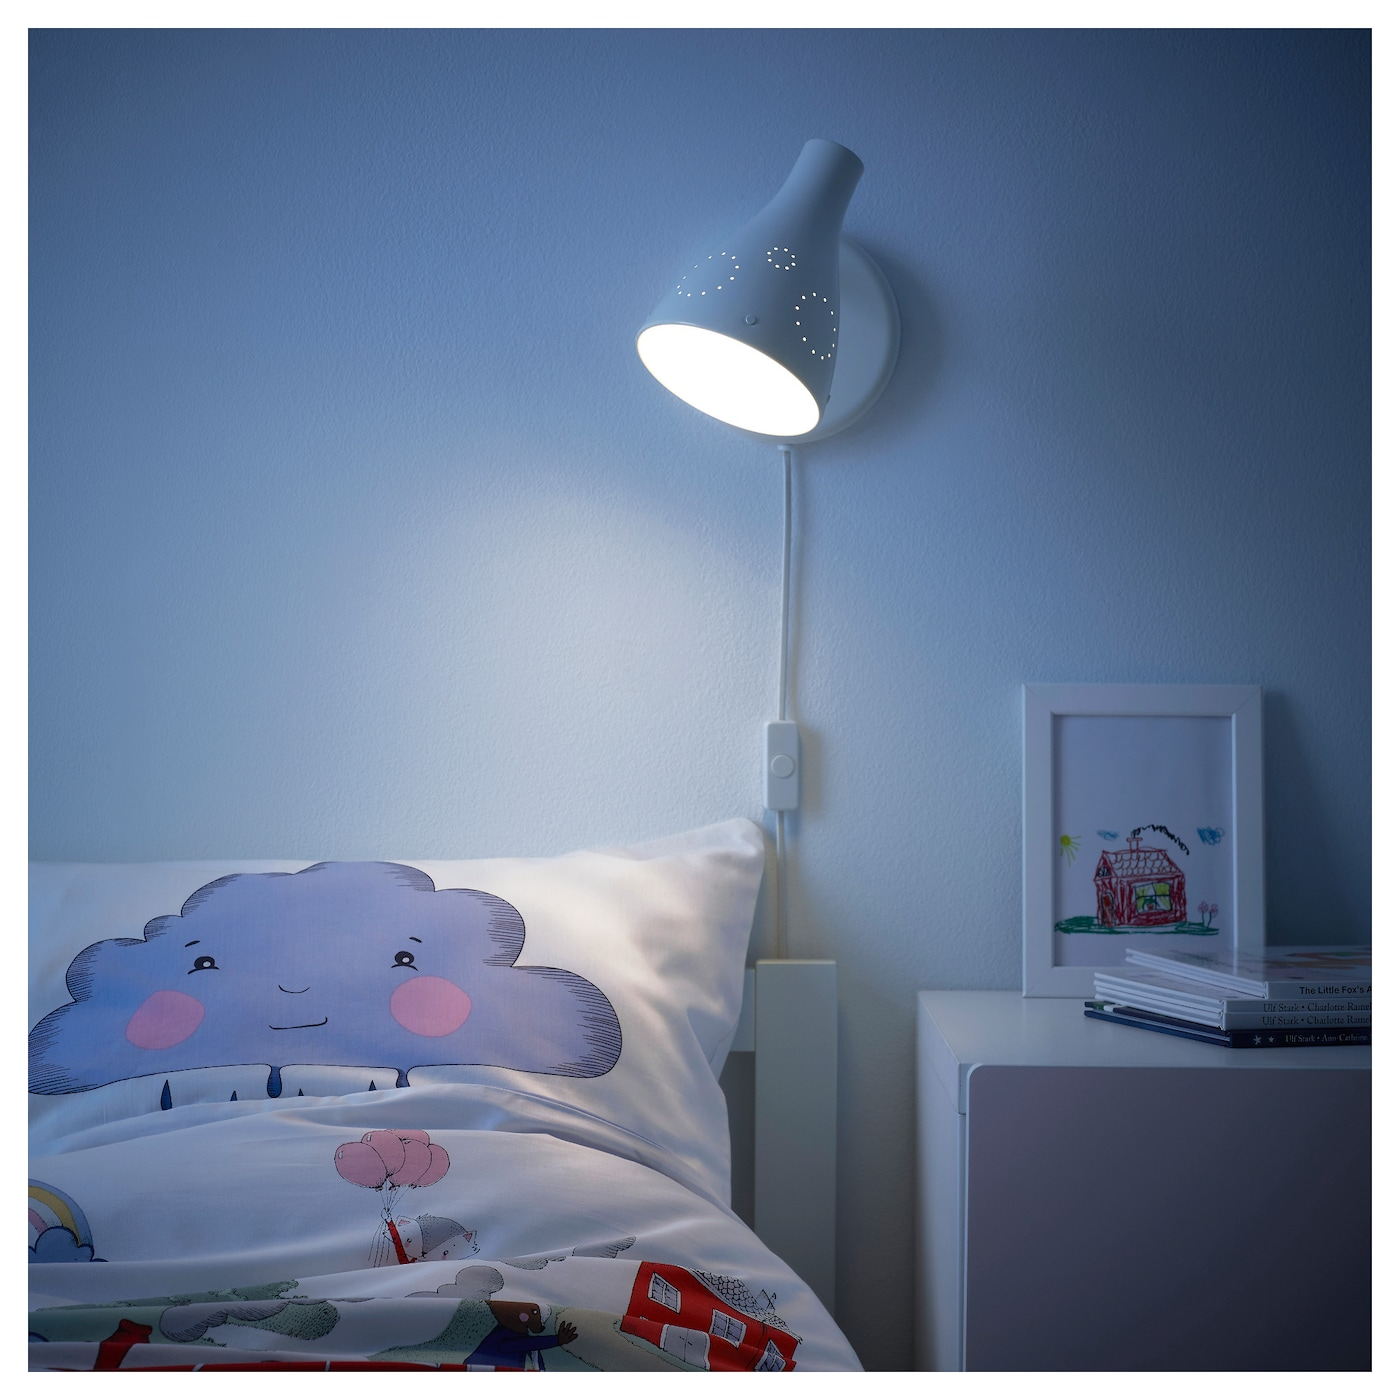 IKEA SNÖIG wall lamp Safety tested and tamper-proof to protect little fingers.